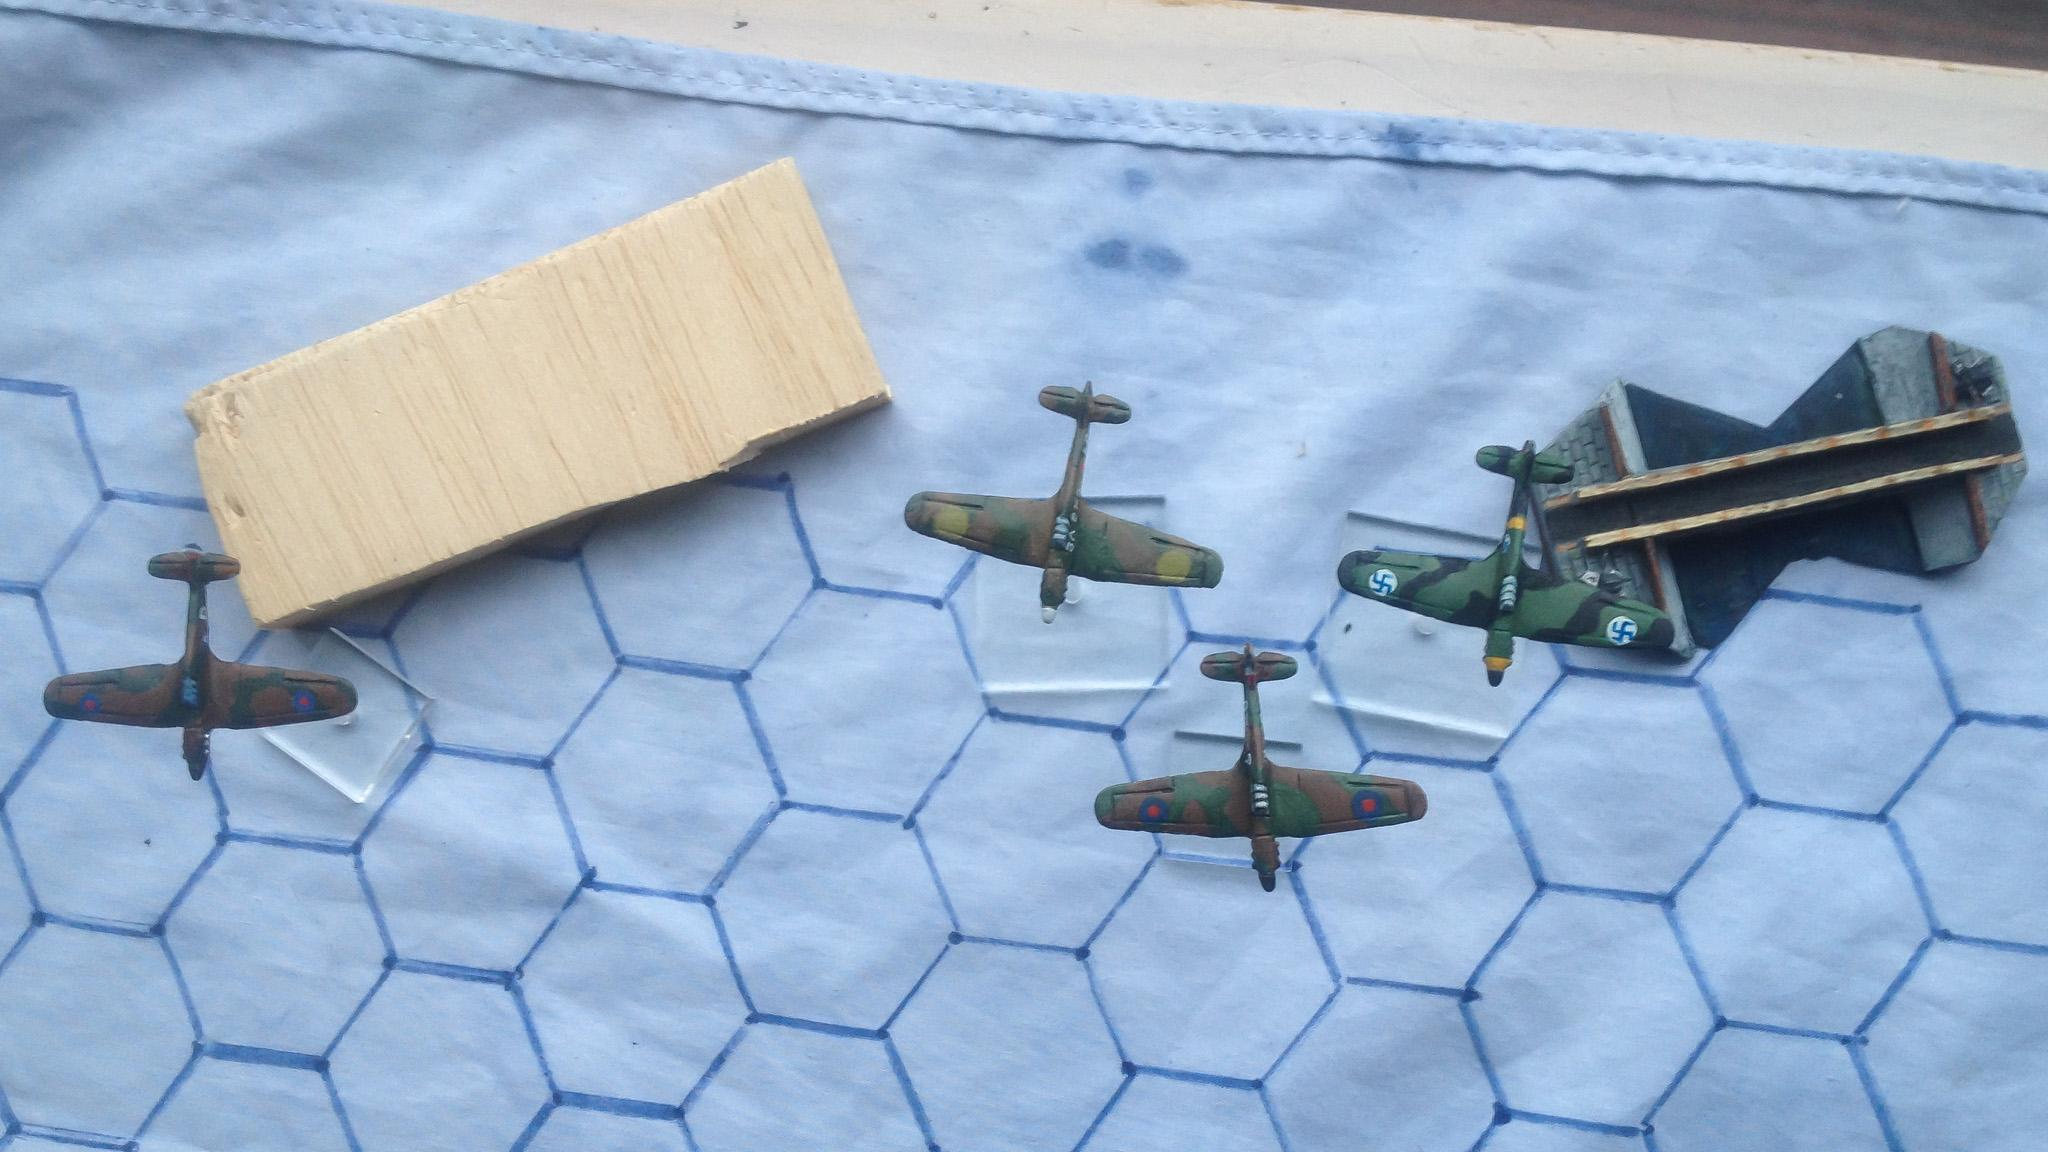 1:300 Scale, 6mm Scale, Air Combat, Finland, French, Germans, Imperial Japan, Italian, Luftwaffe, Raf, Republic Of China, Soviet, Usaaf, World War 2